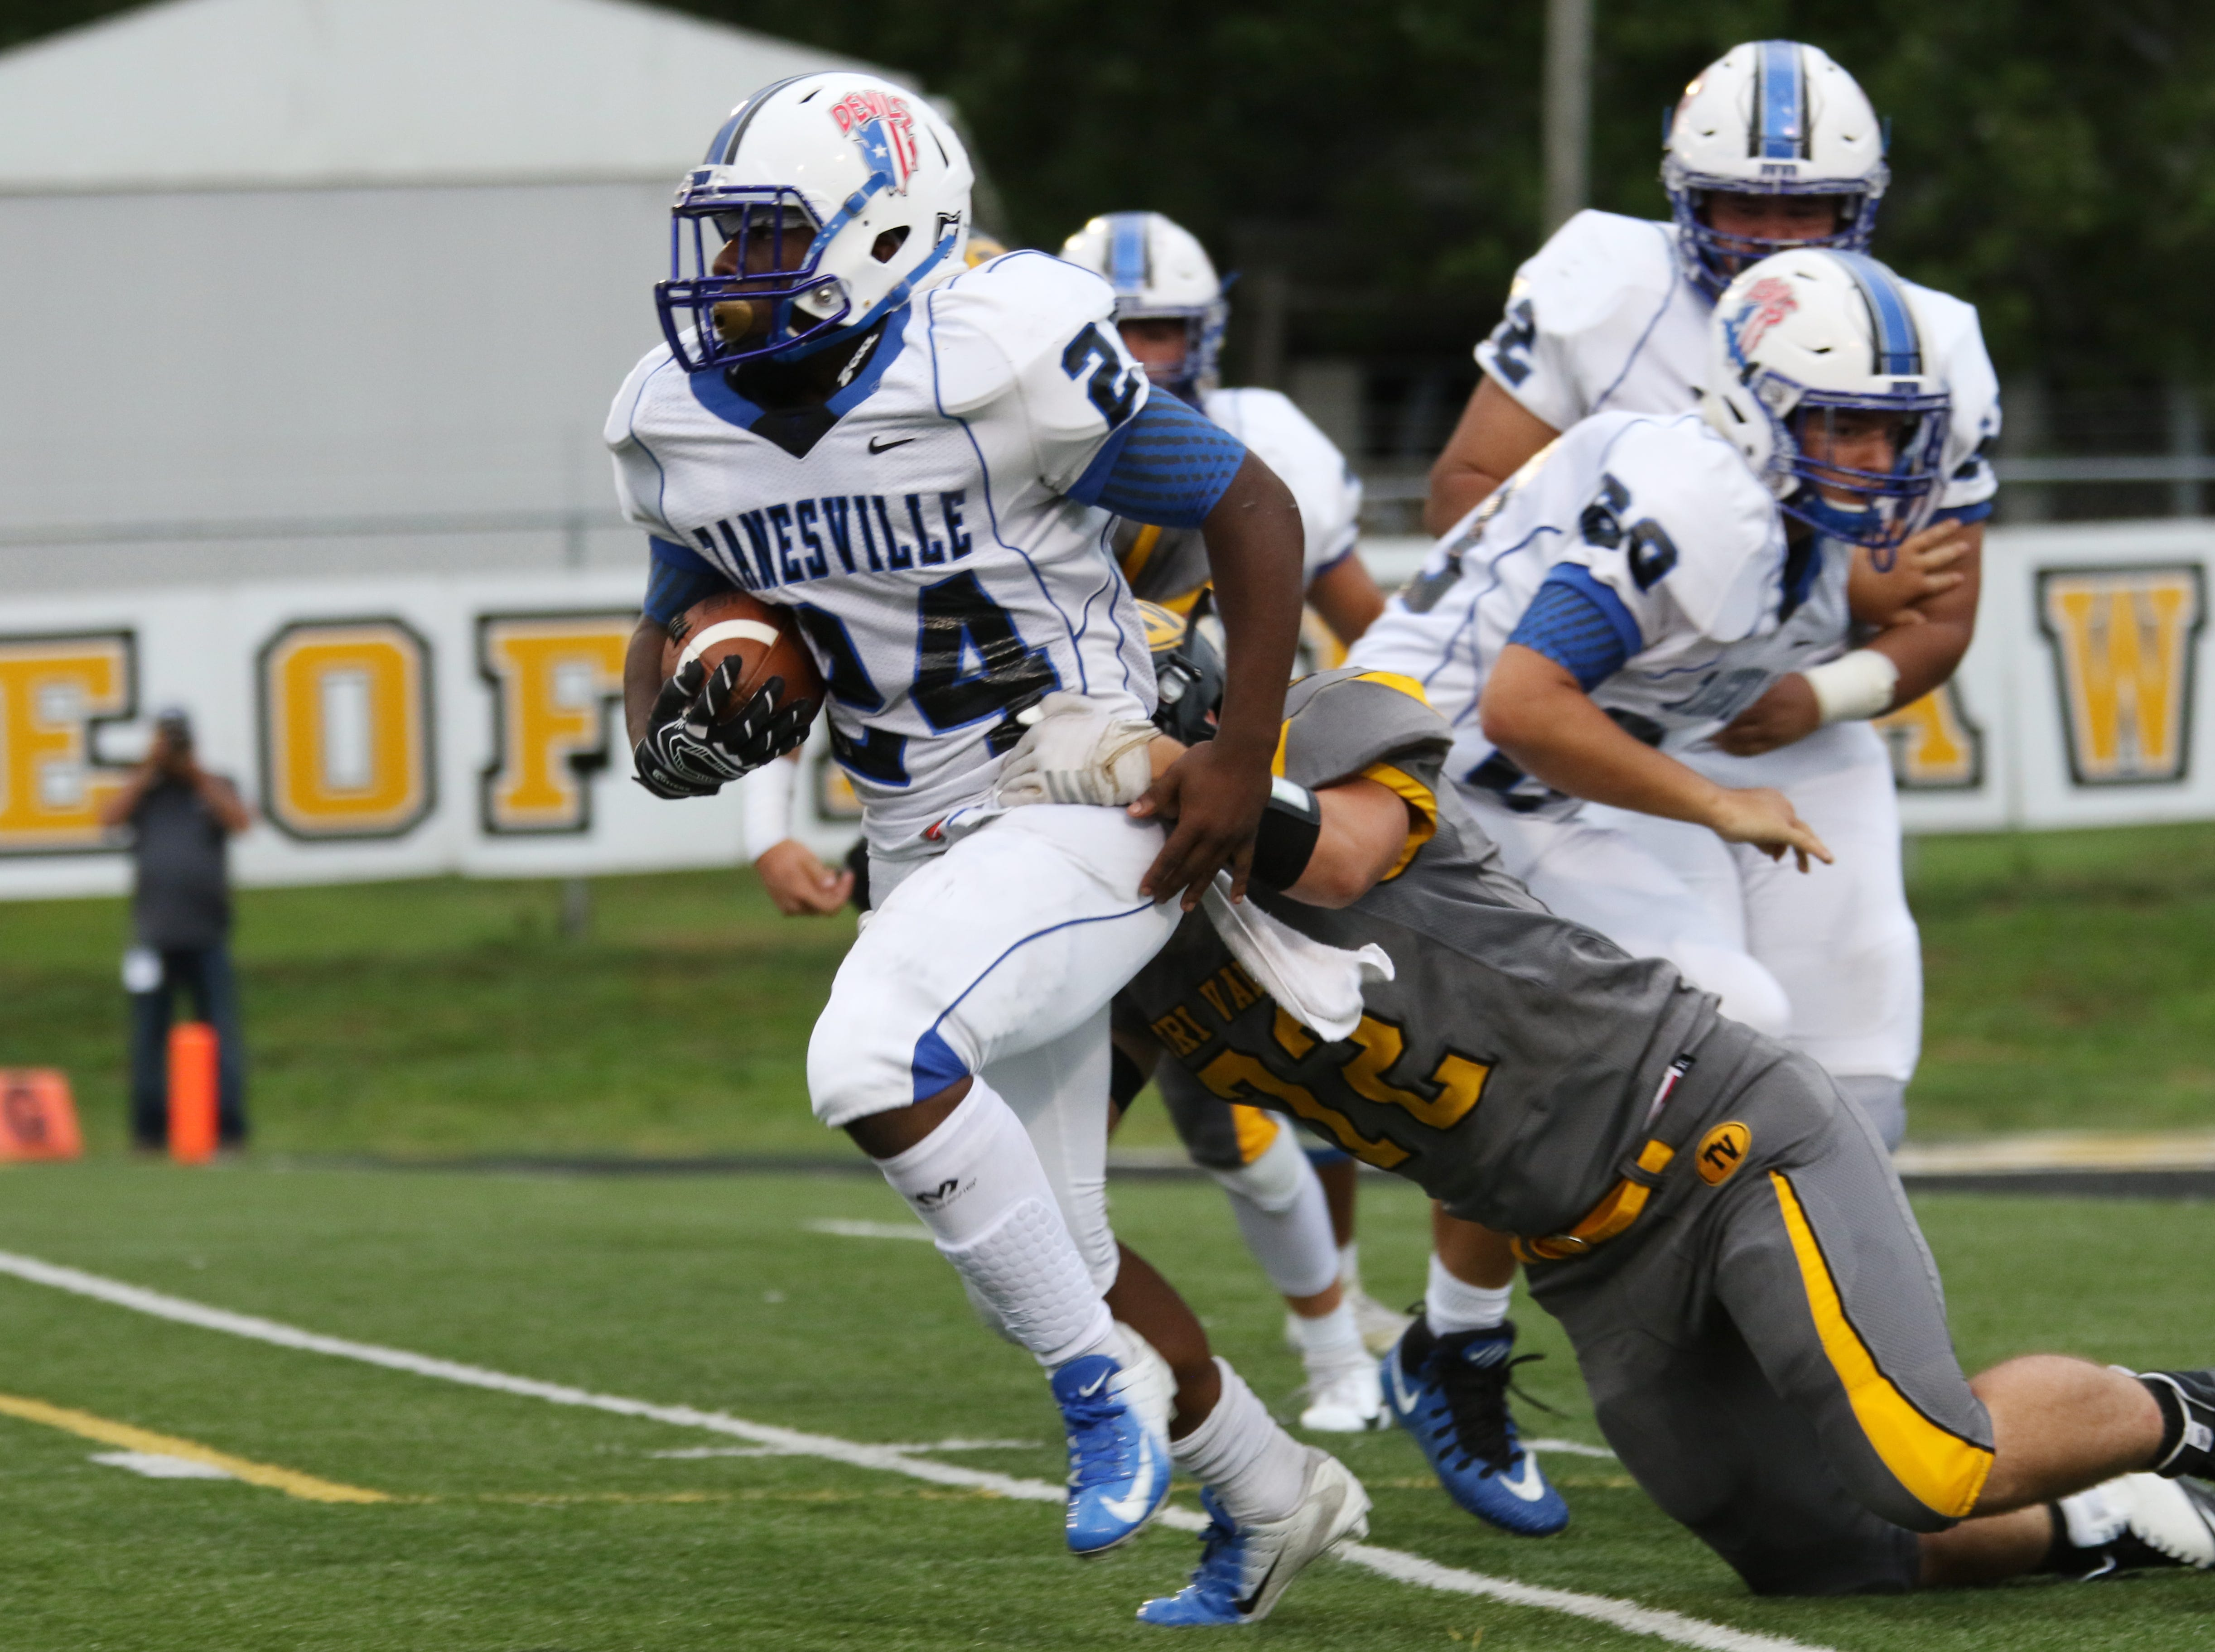 Zanesville's Jalen Haley carries the ball against Tri-Valley.